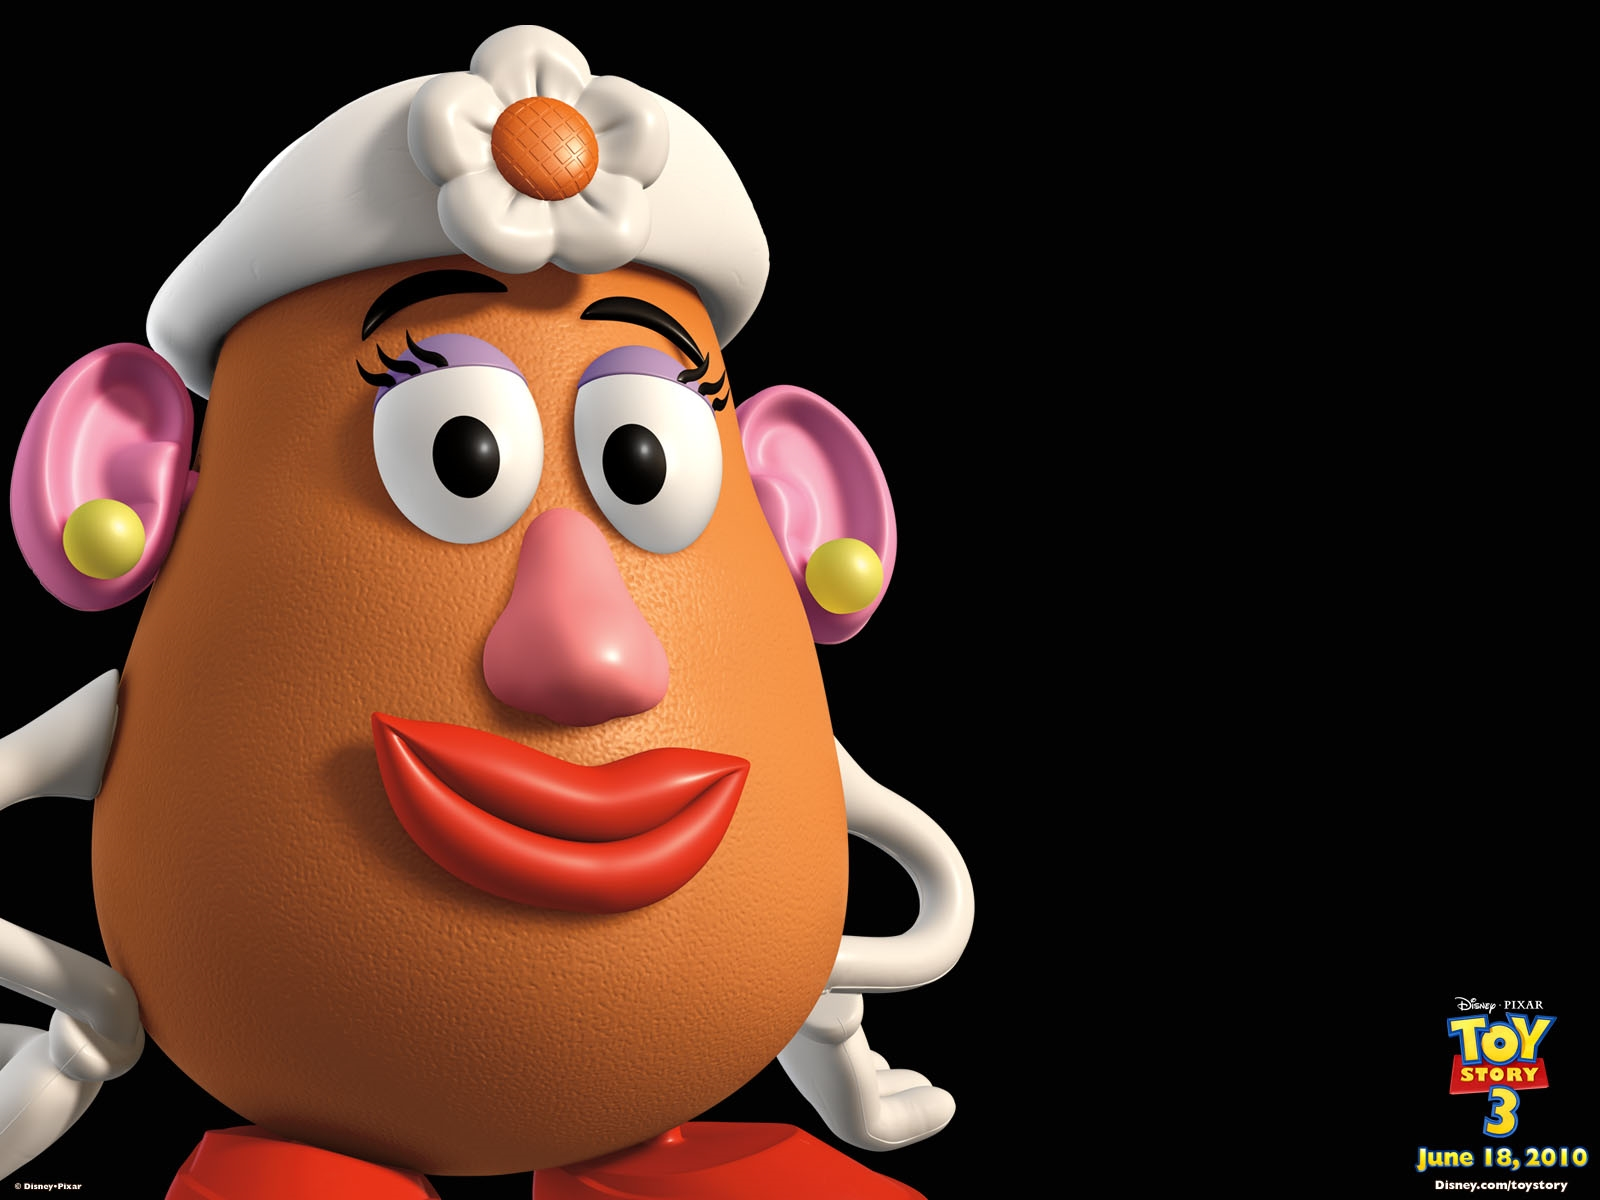 mrs potato head toy story 1 2 3 free hd wallpaper